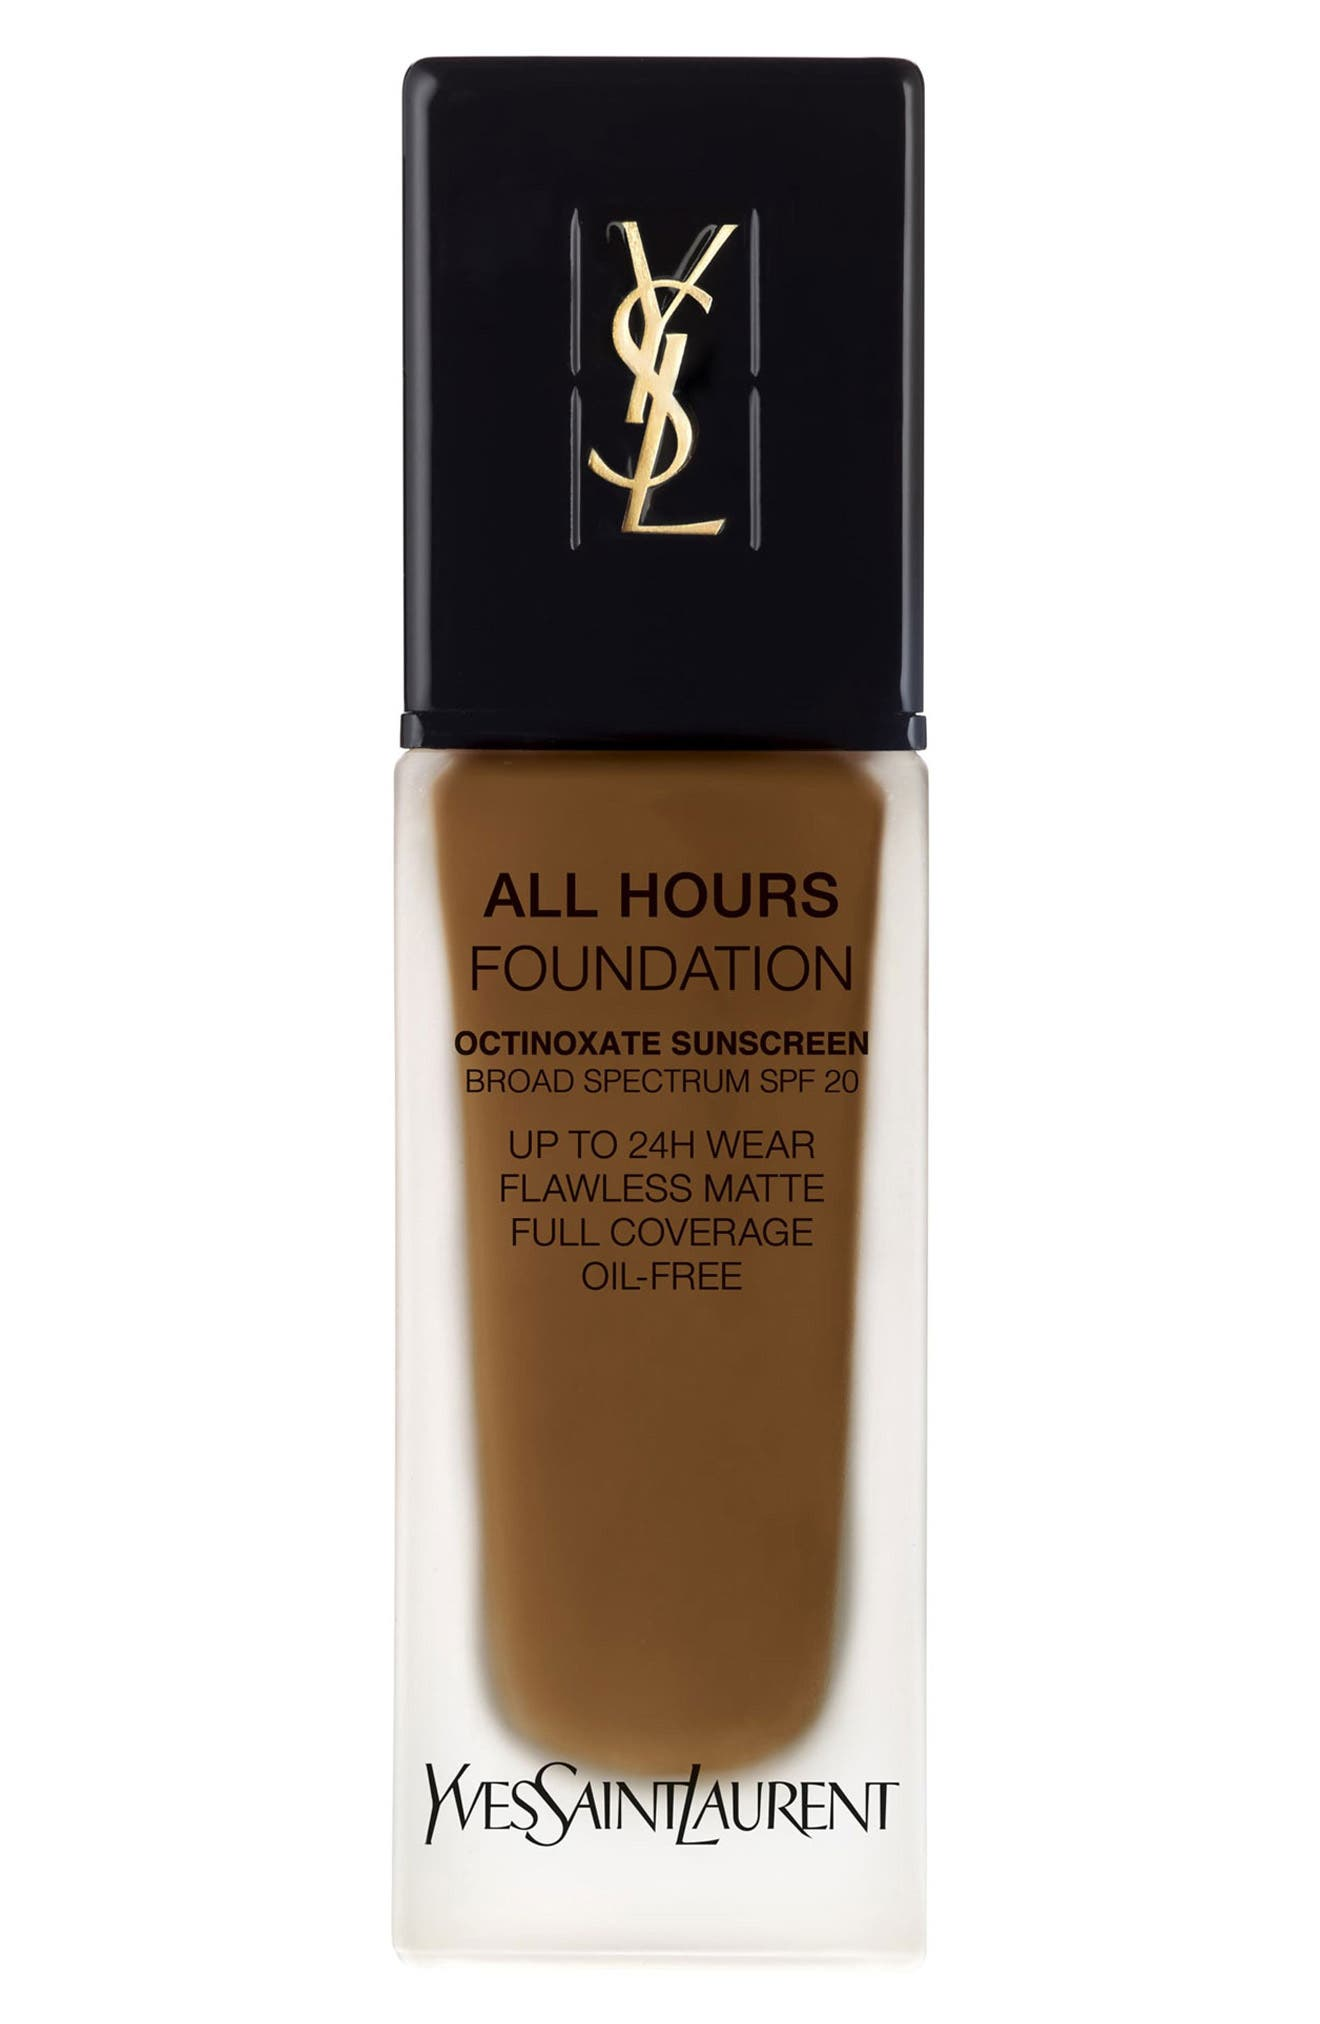 Yves Saint Laurent All Hours Full Coverage Matte Foundation Spf 20 - B85 Coffee